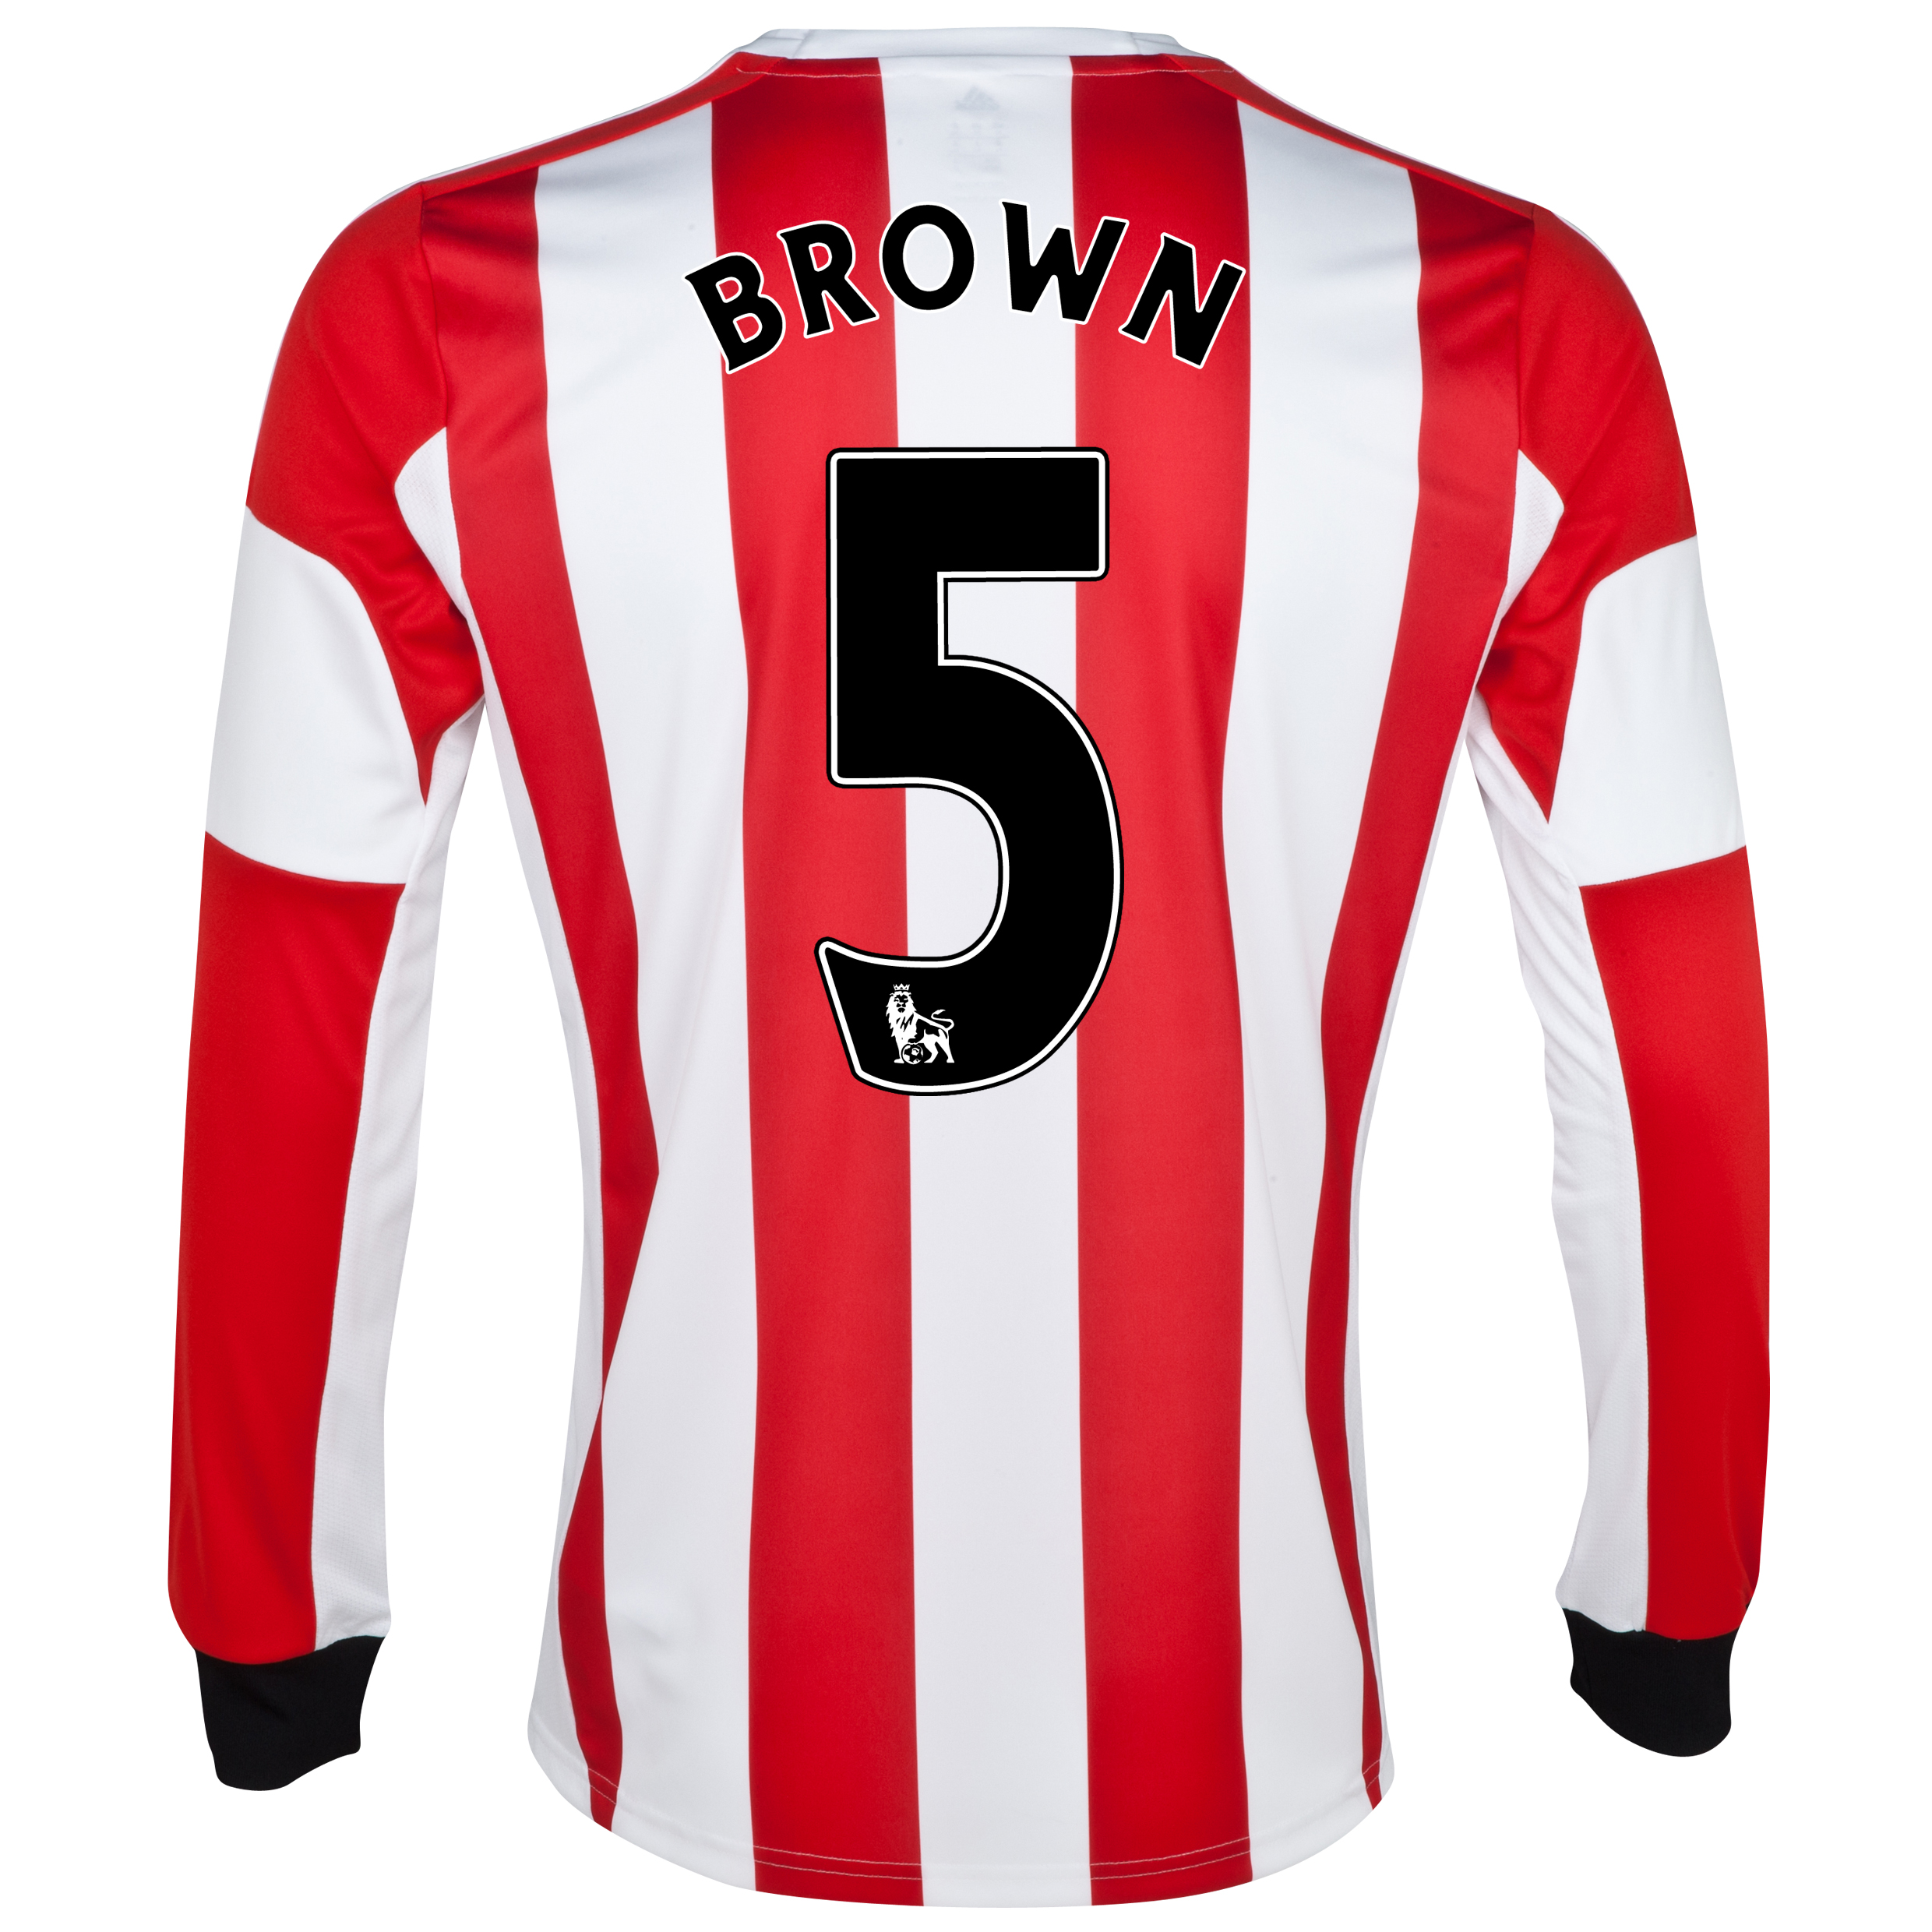 Sunderland Home Shirt 2013/14 - Long Sleeved  with Brown 5 printing